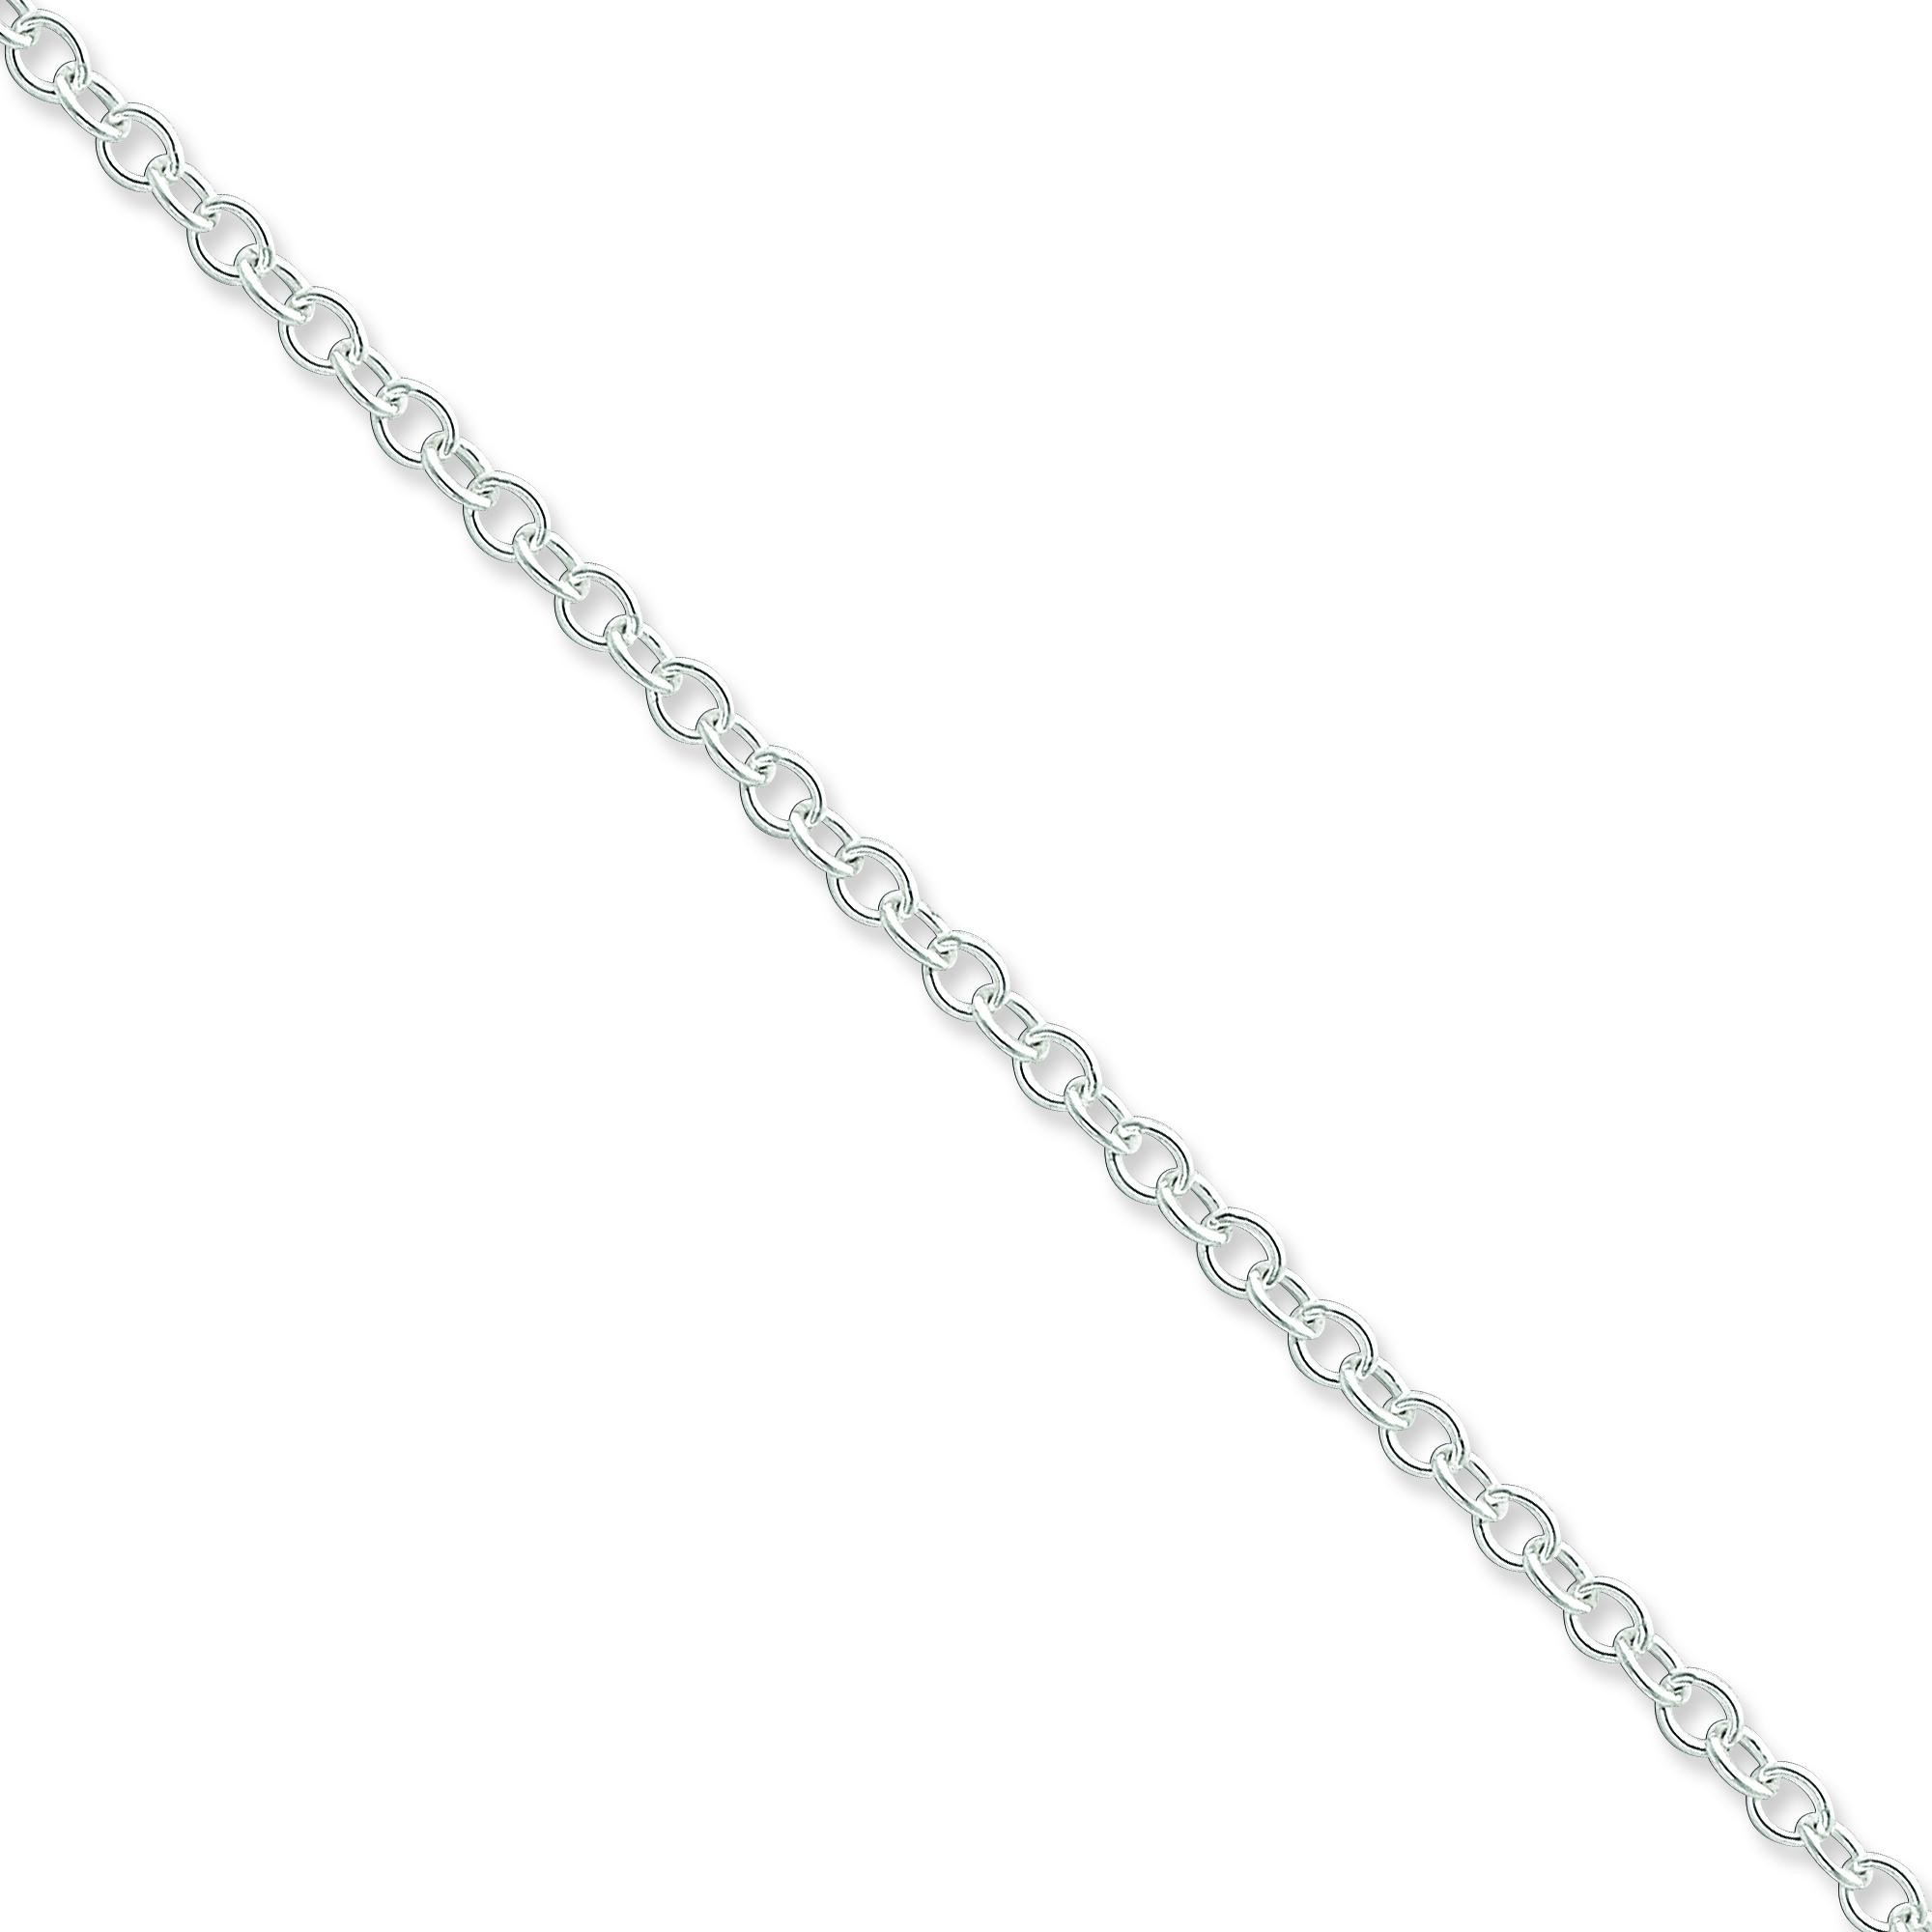 Sterling Silver 16 inch 3.75 mm Oval Cable Choker Necklace